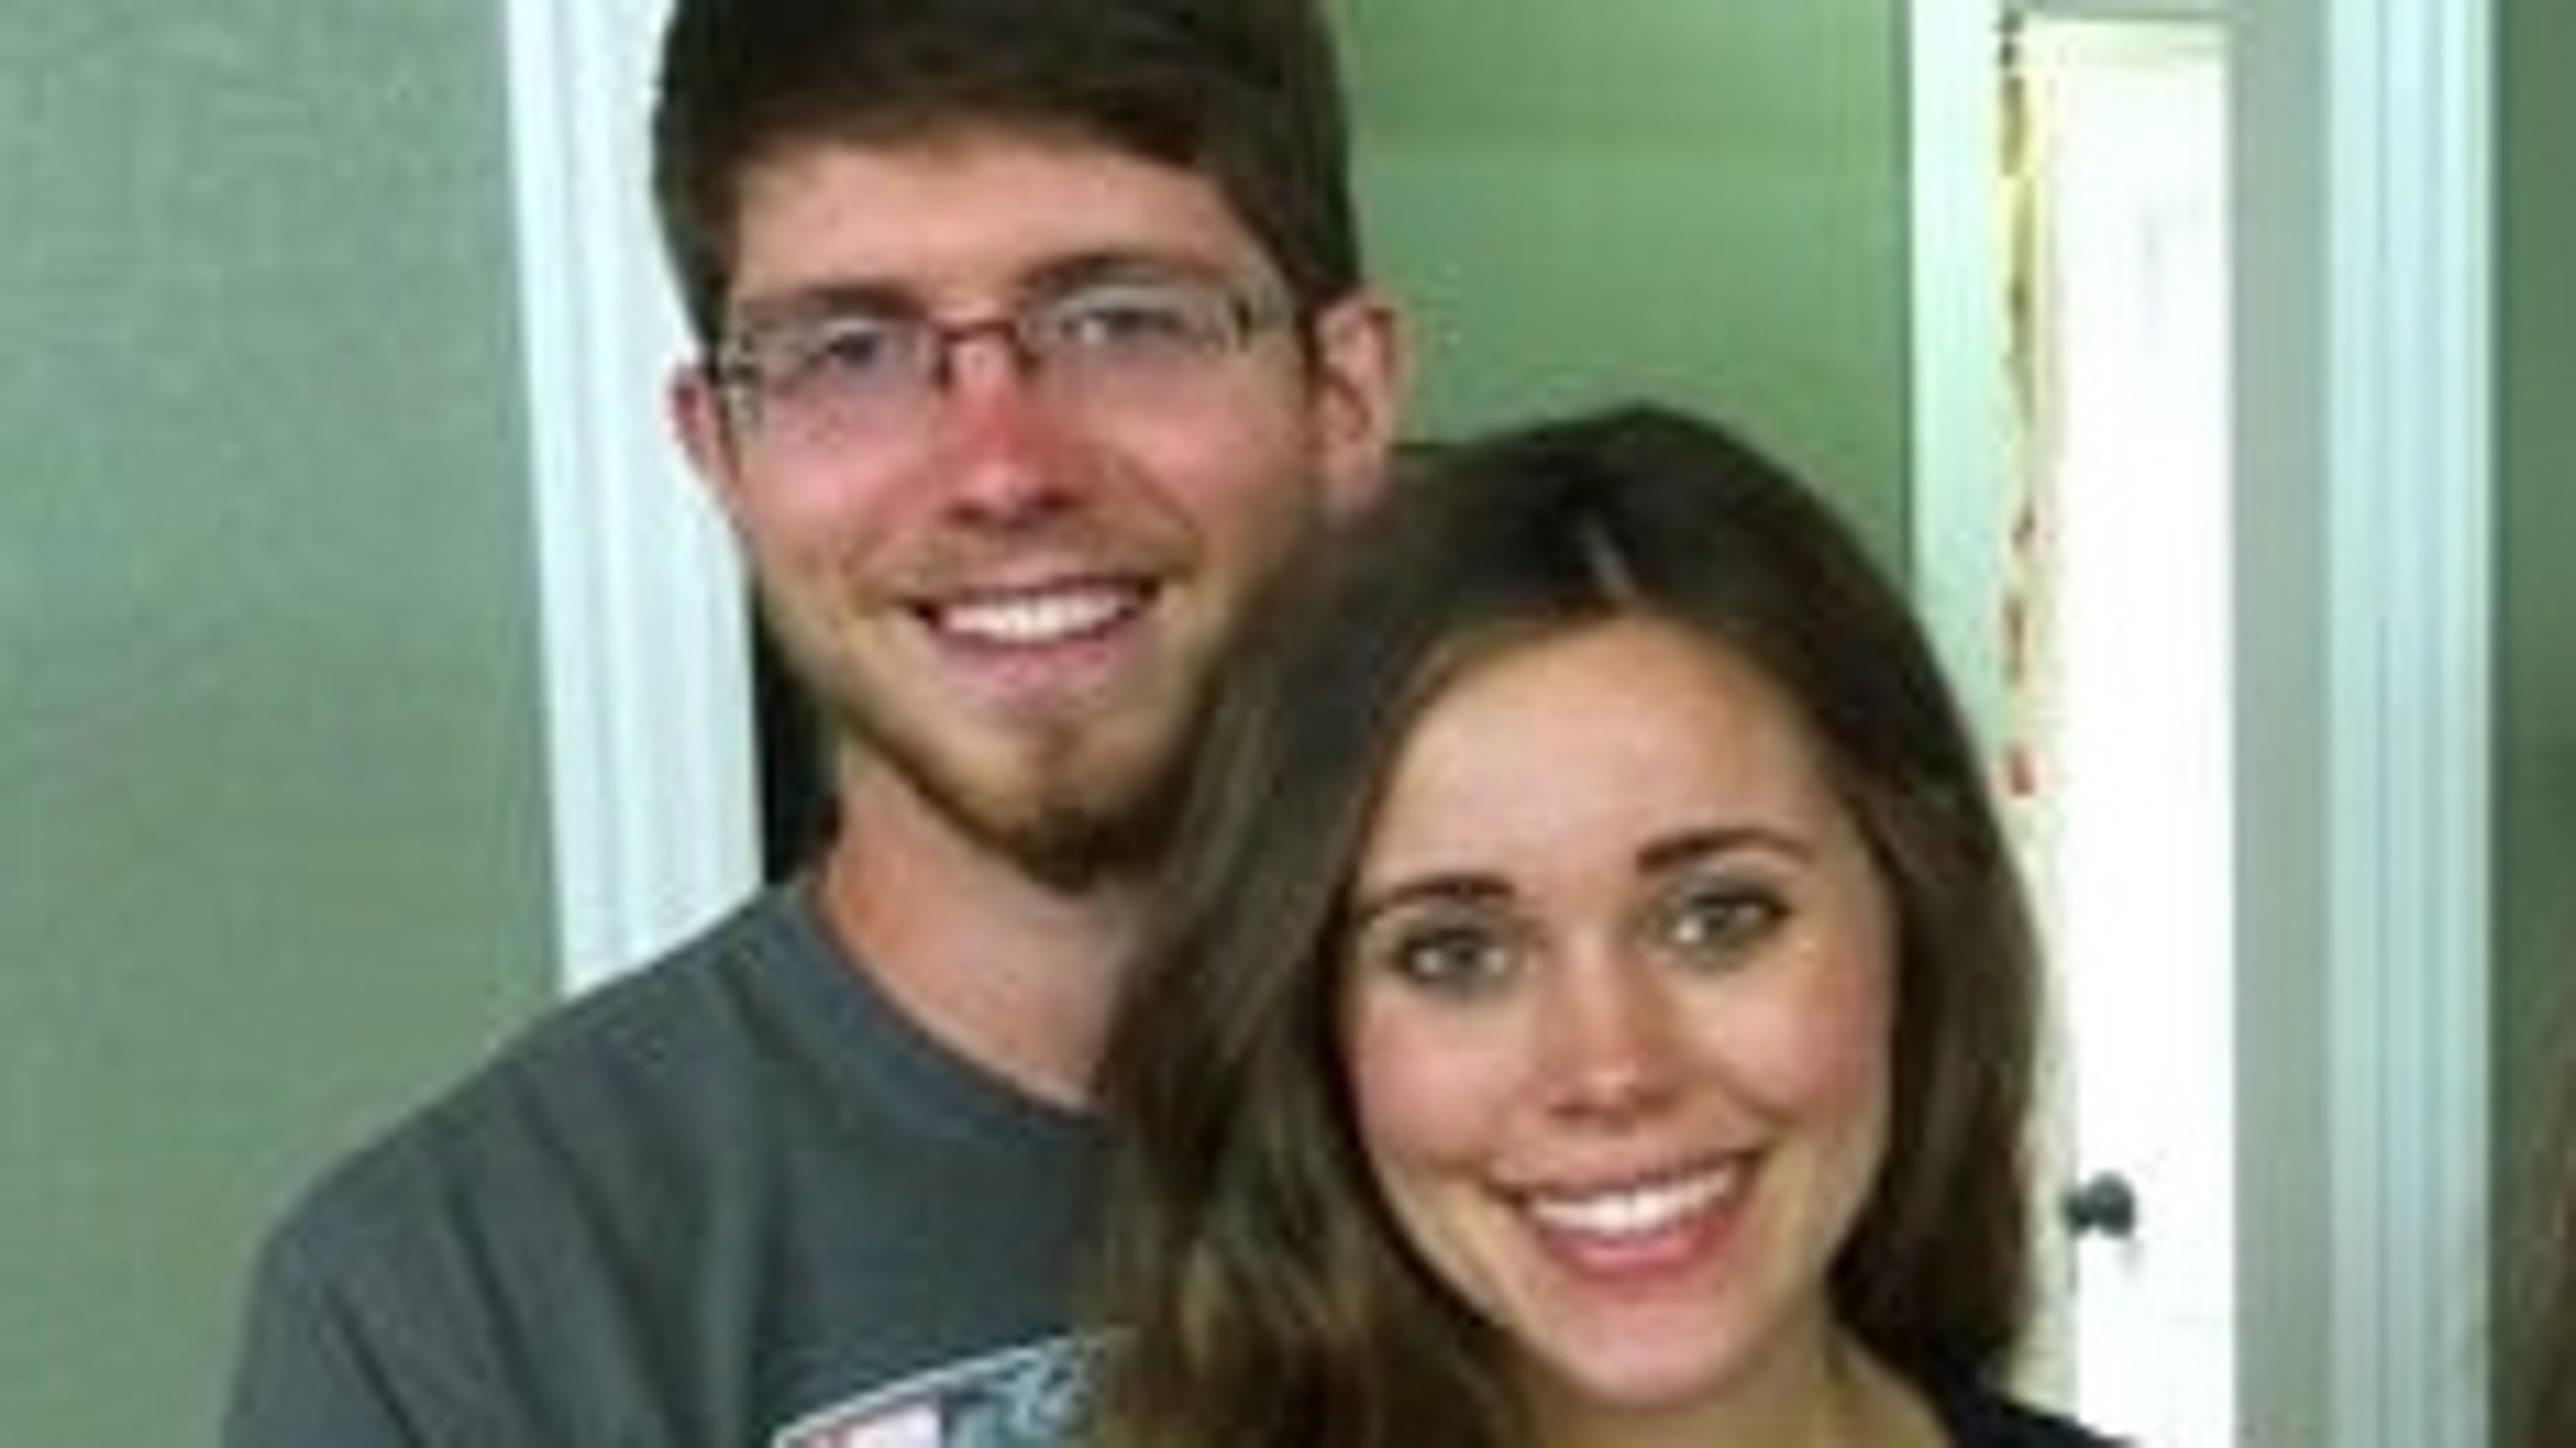 Jessa Duggar gives birth in unexpected way: on her couch at home